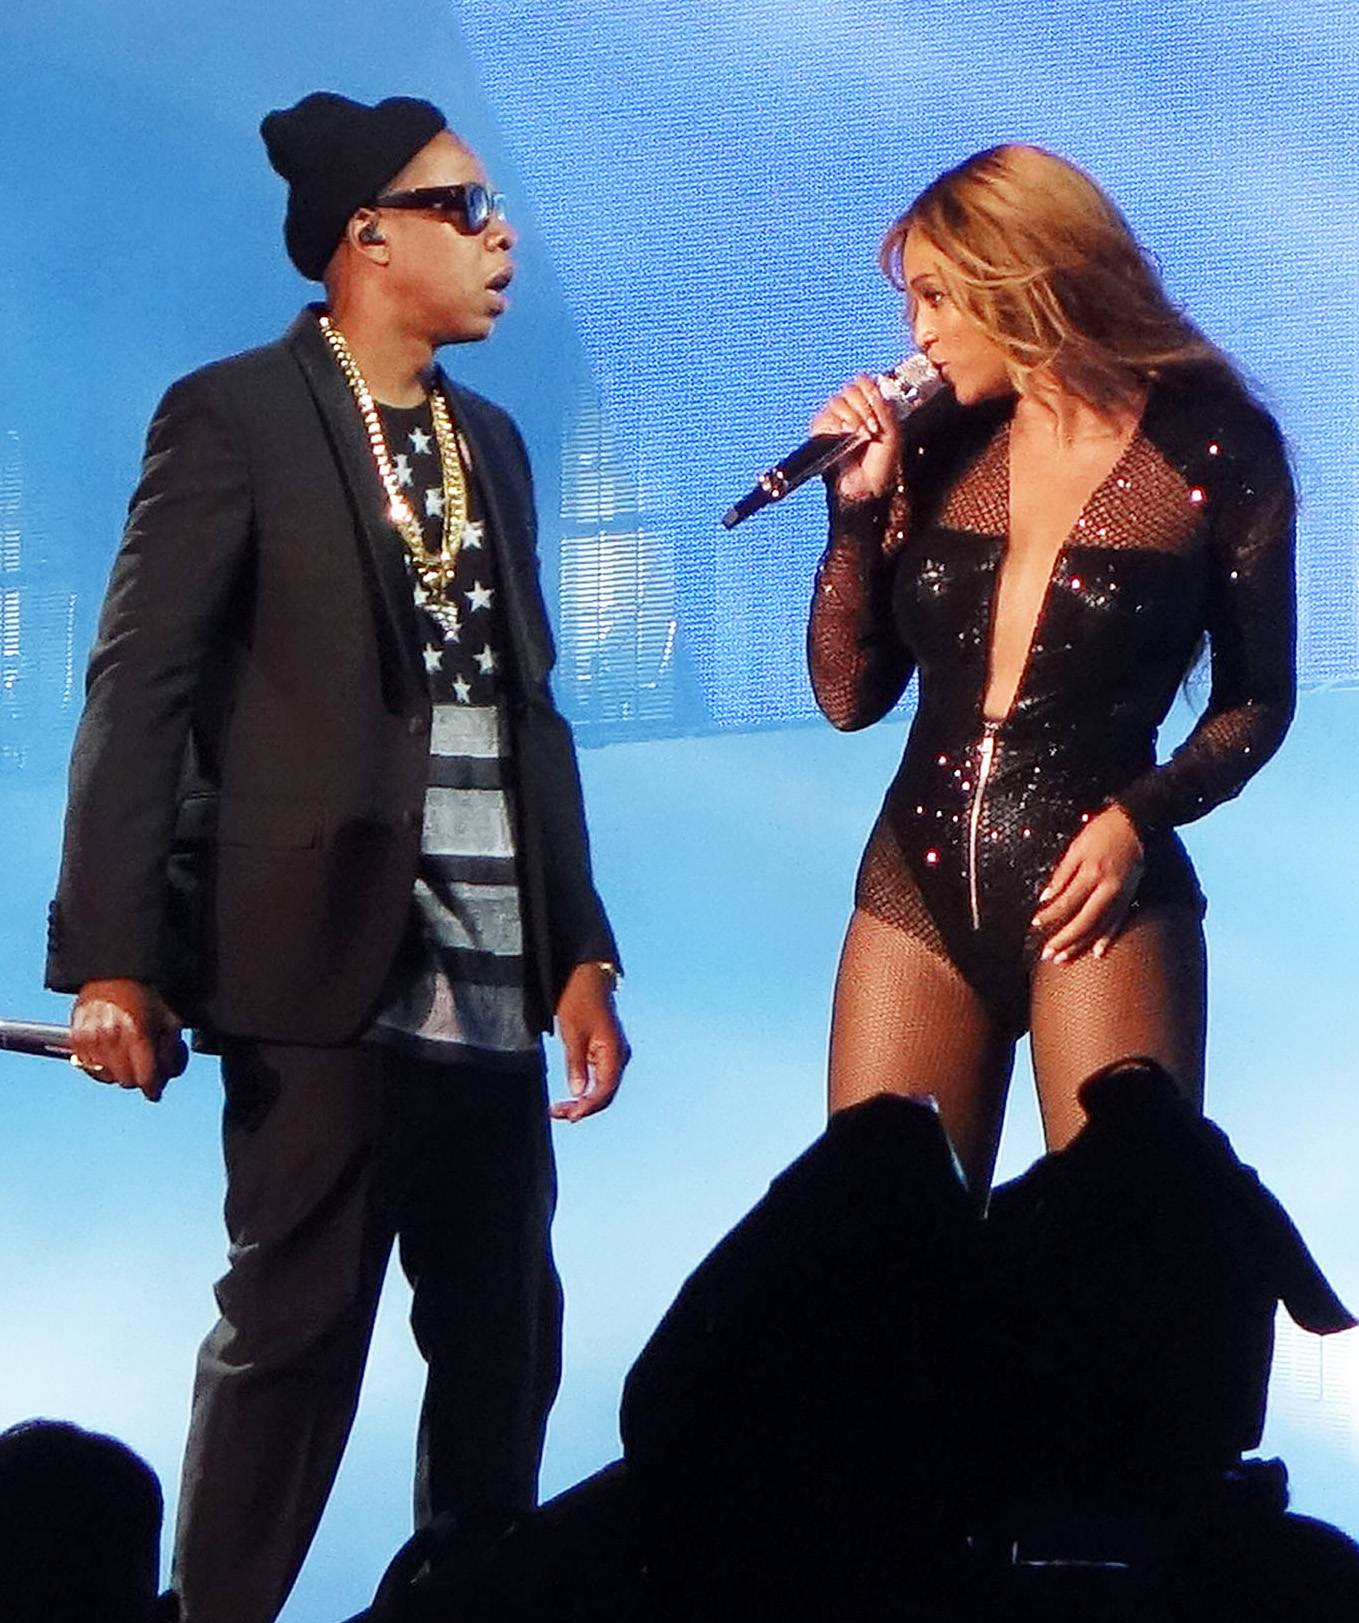 Two Are Better Than One - What happens when two of the world?s biggest music stars get married, start a family, sell out individual tours, then come together for a joint jaunt? As of June 25,Jay Z and Beyonc?are officially On the Run. The power couple announced their 16-city stadium tour in April and kicked it off to a sold-out crowdat Sun Life Stadium in Miami Gardens, Fla. The duo delivered a strategically blended infusion of sexiness, swag, lyricism and vocals like never before in a two-hour, 42-song set. But the Carters aren't the only stars who've linked up to bring a blockbuster bill to a stadium near you. Check out these other unforgettable co-headling tours.(Photo:Jason Winslow / Splash News)